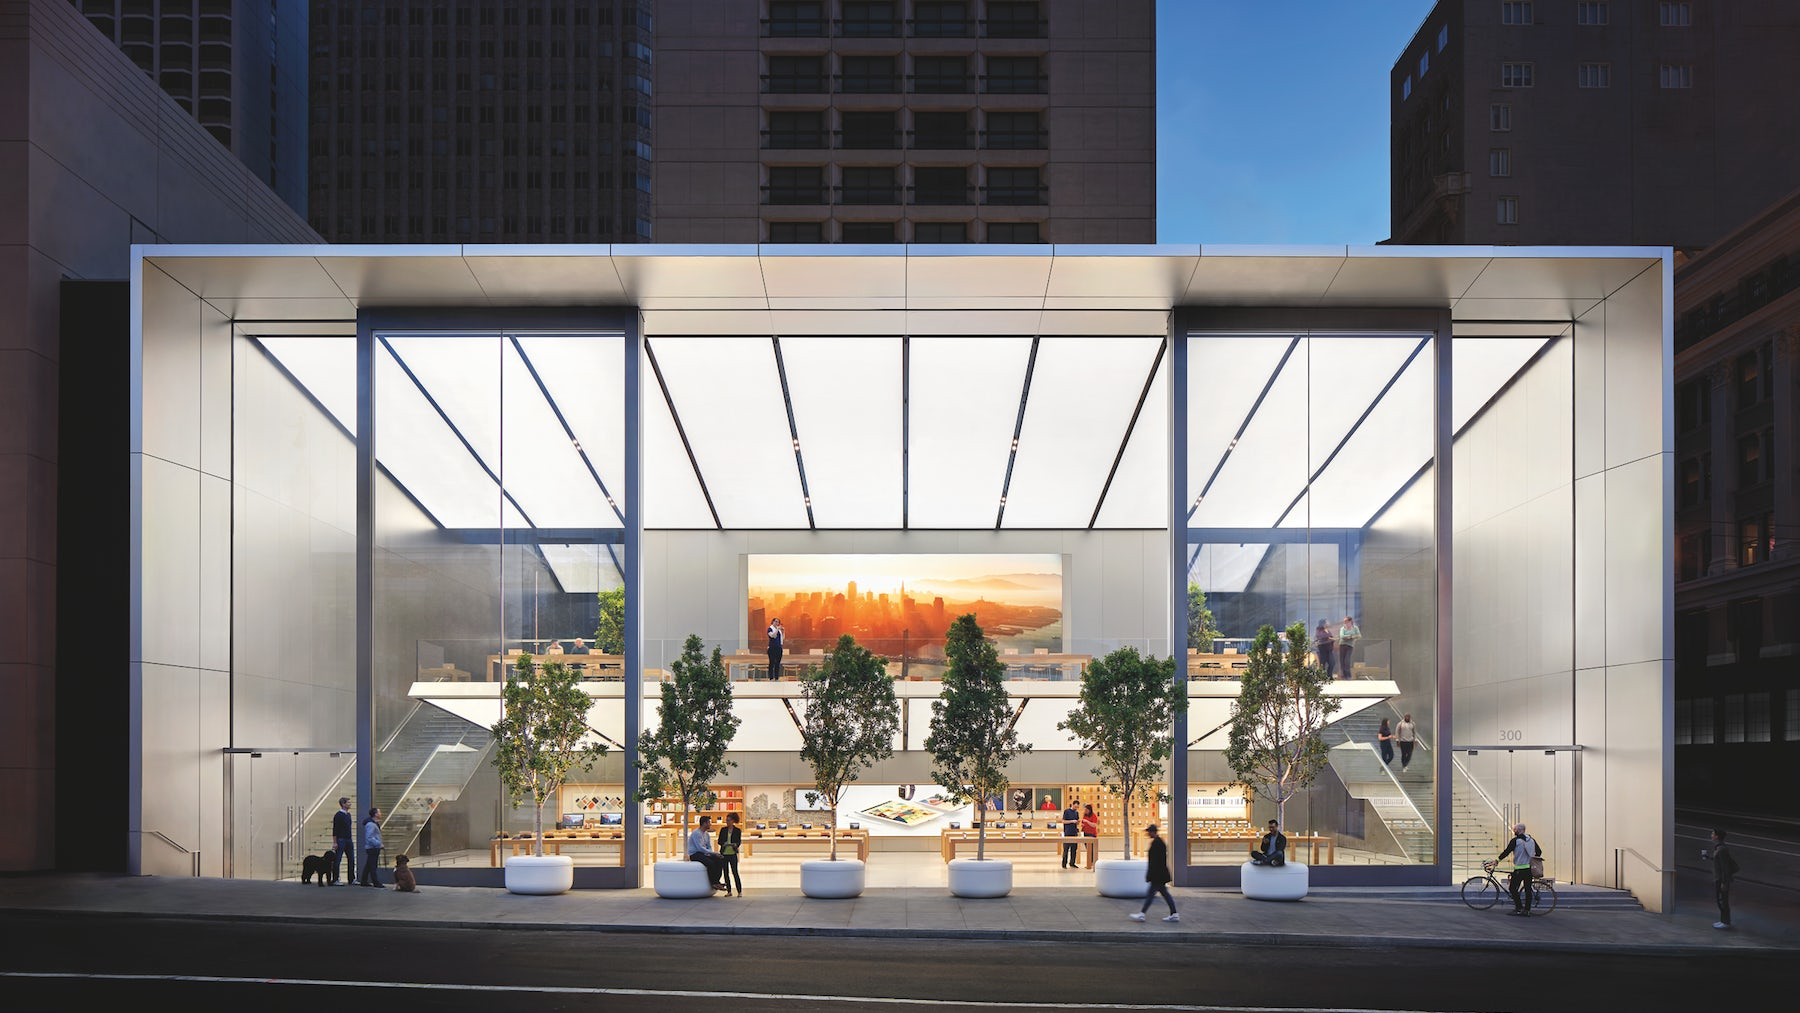 Apple's new flagship store in Union Square, San Francisco | Source: Apple